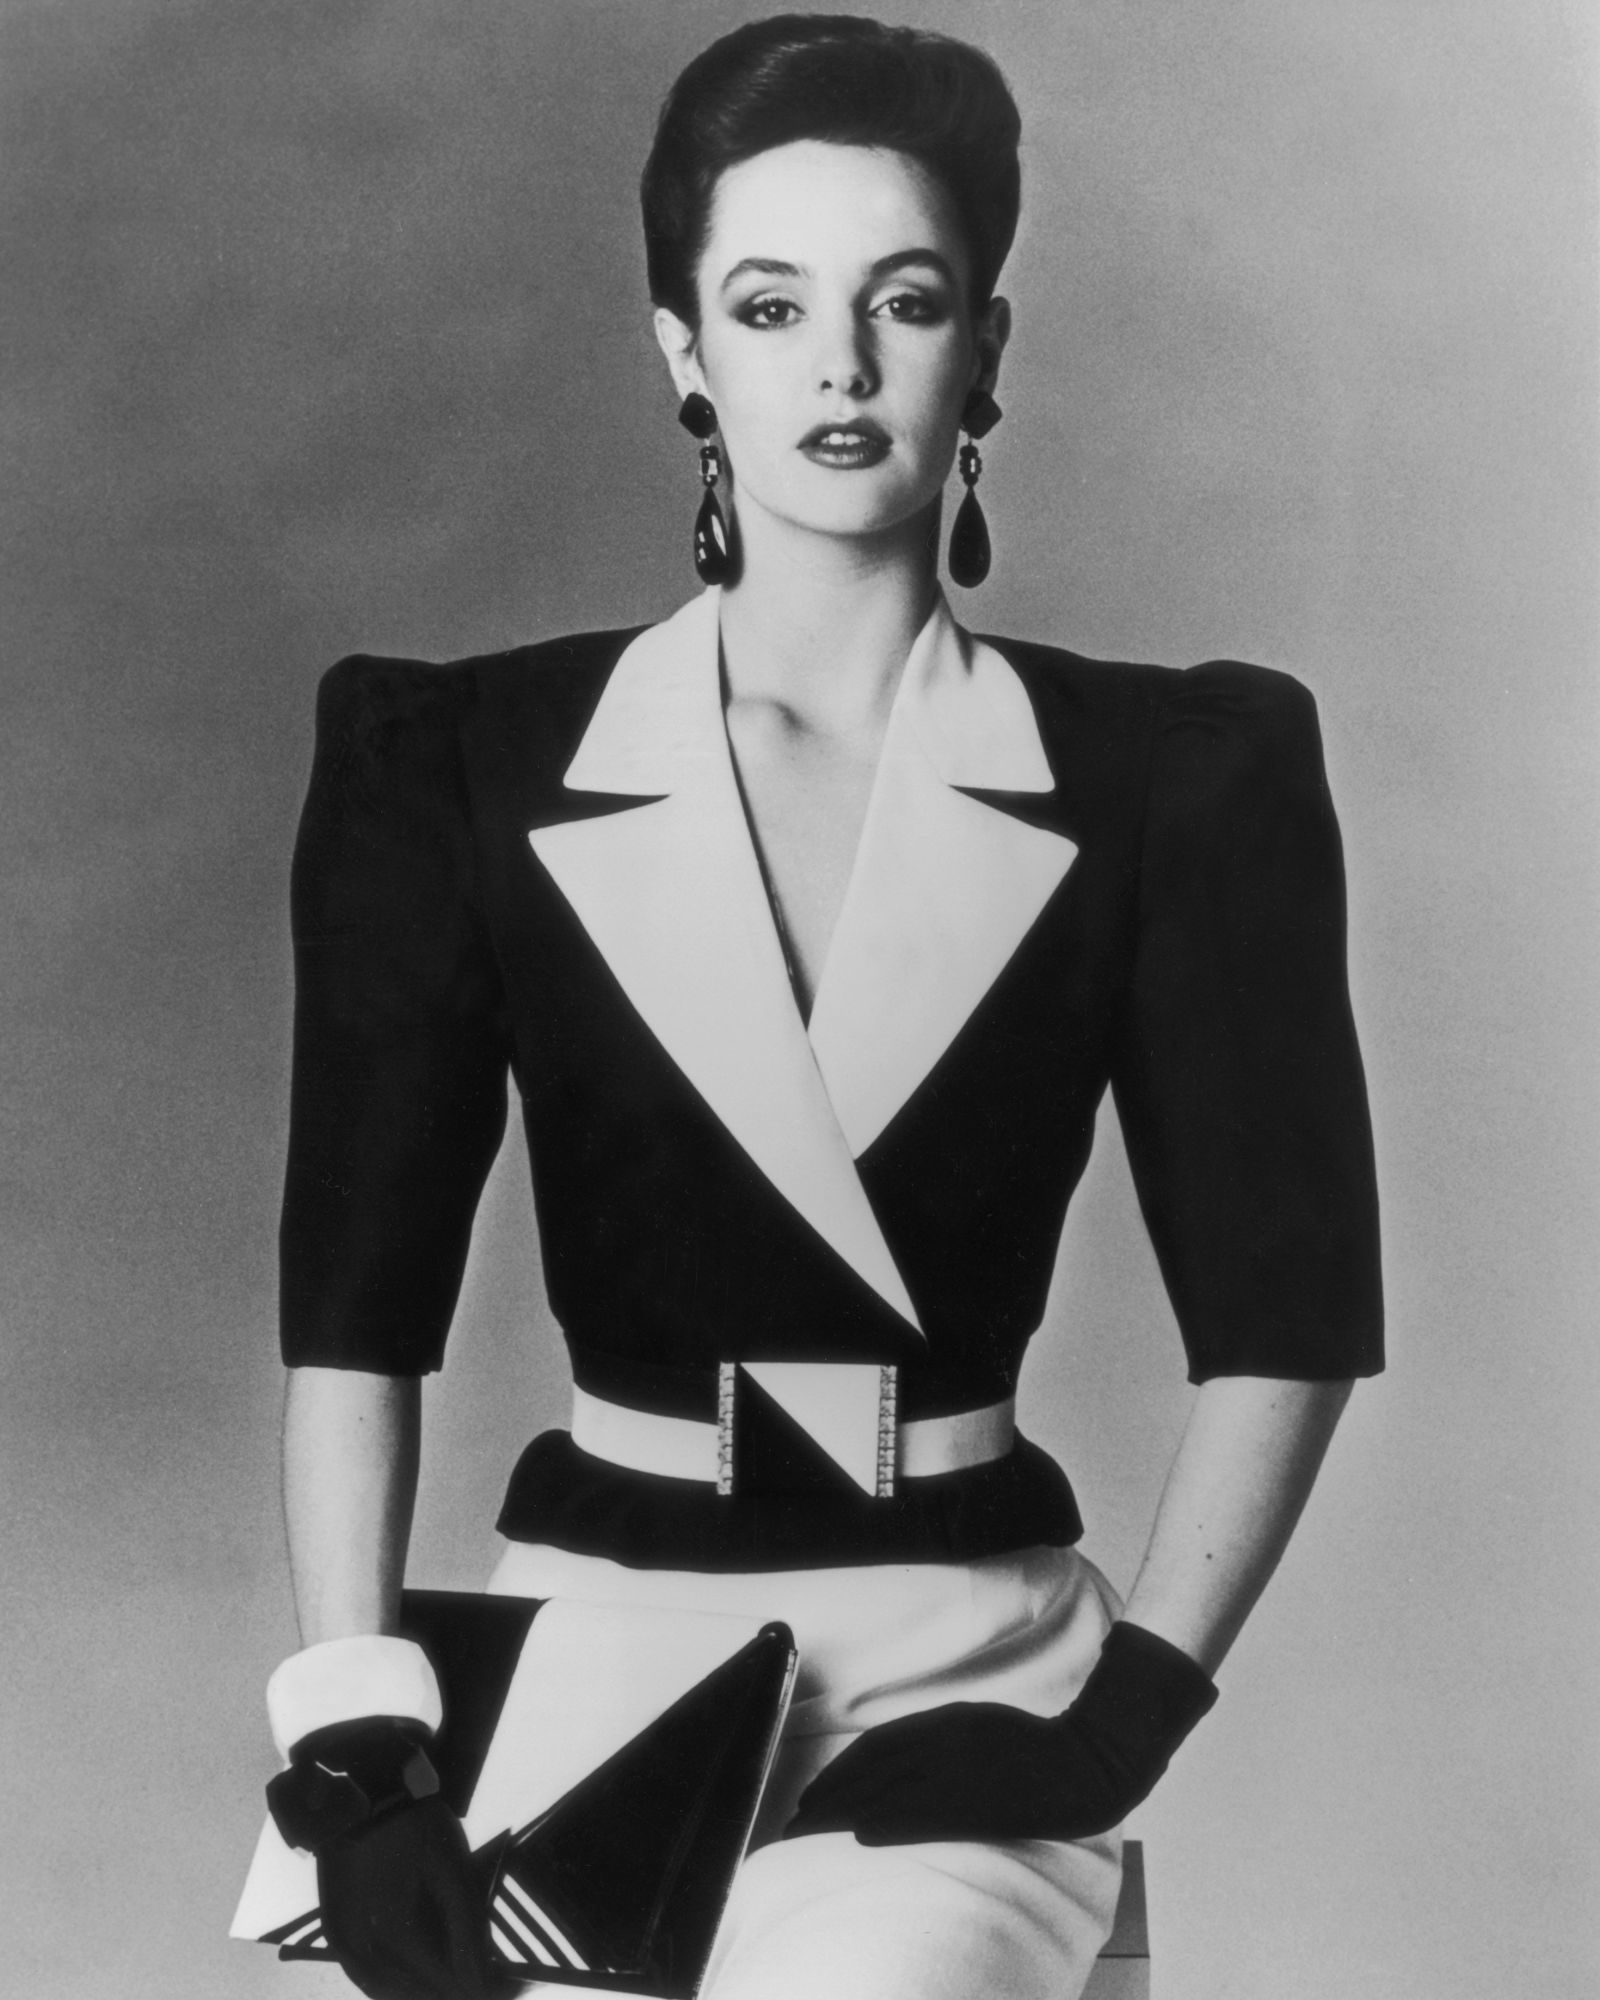 A woman is wearing an all black and white outfit: a jacket with extra wide shoulders, a white bottom, black gloves, black and white clutch and earrings